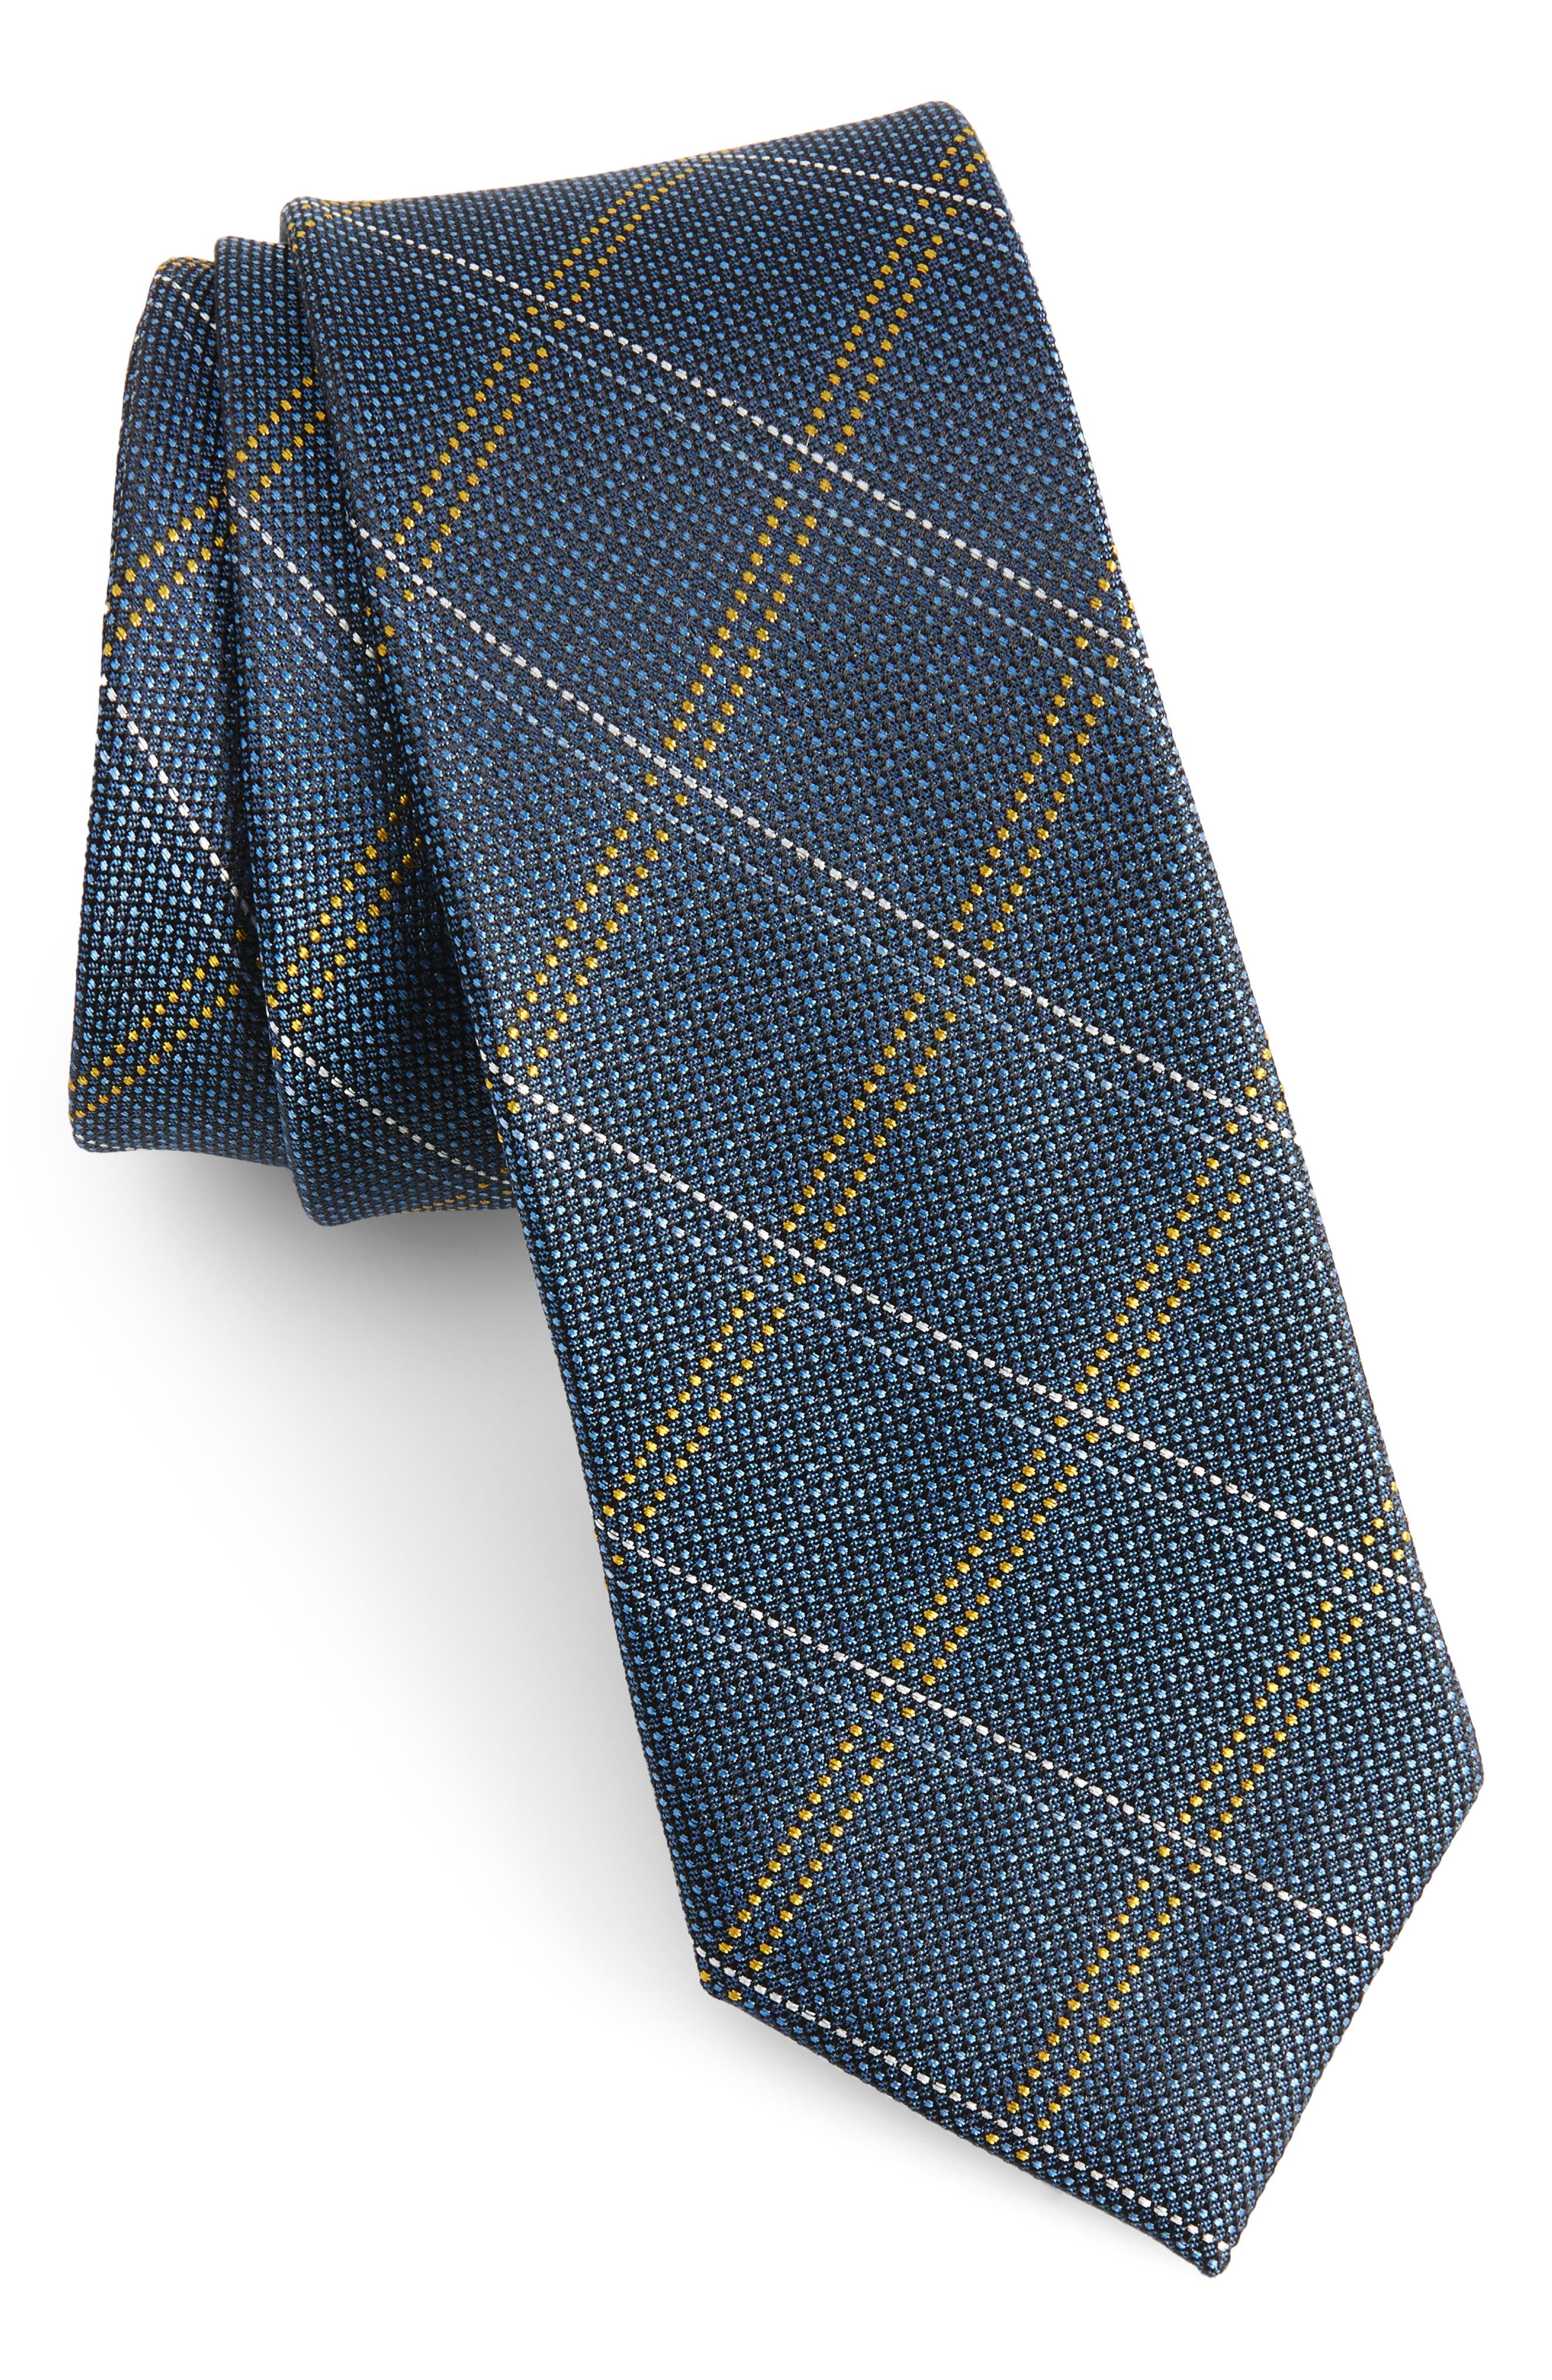 Wingman Checks Silk Skinny Tie,                         Main,                         color, 400